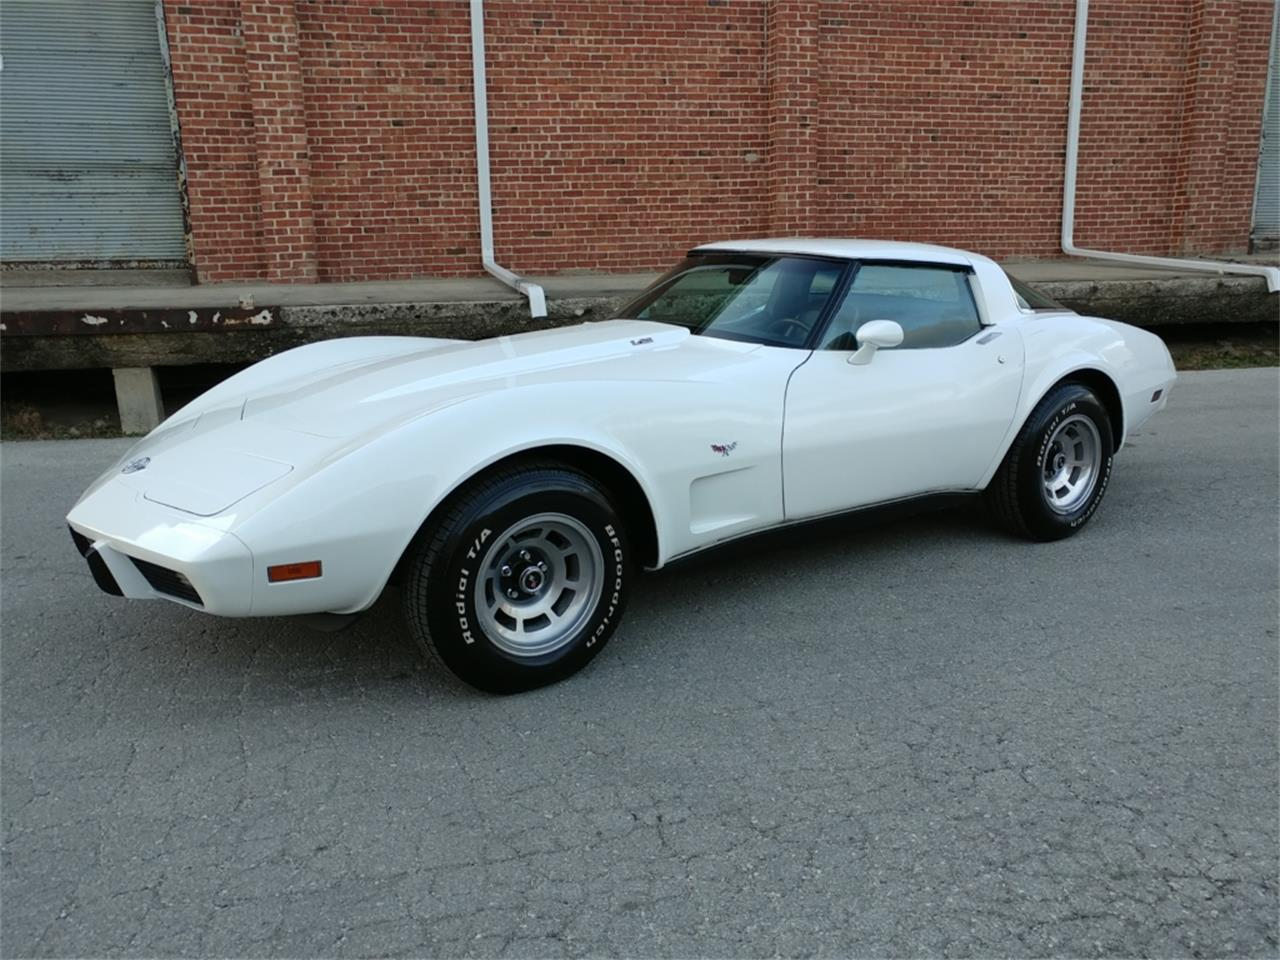 Large Picture of 1978 Corvette located in N. Kansas City Missouri - $15,995.00 Offered by Vintage Vettes, LLC - MO2O